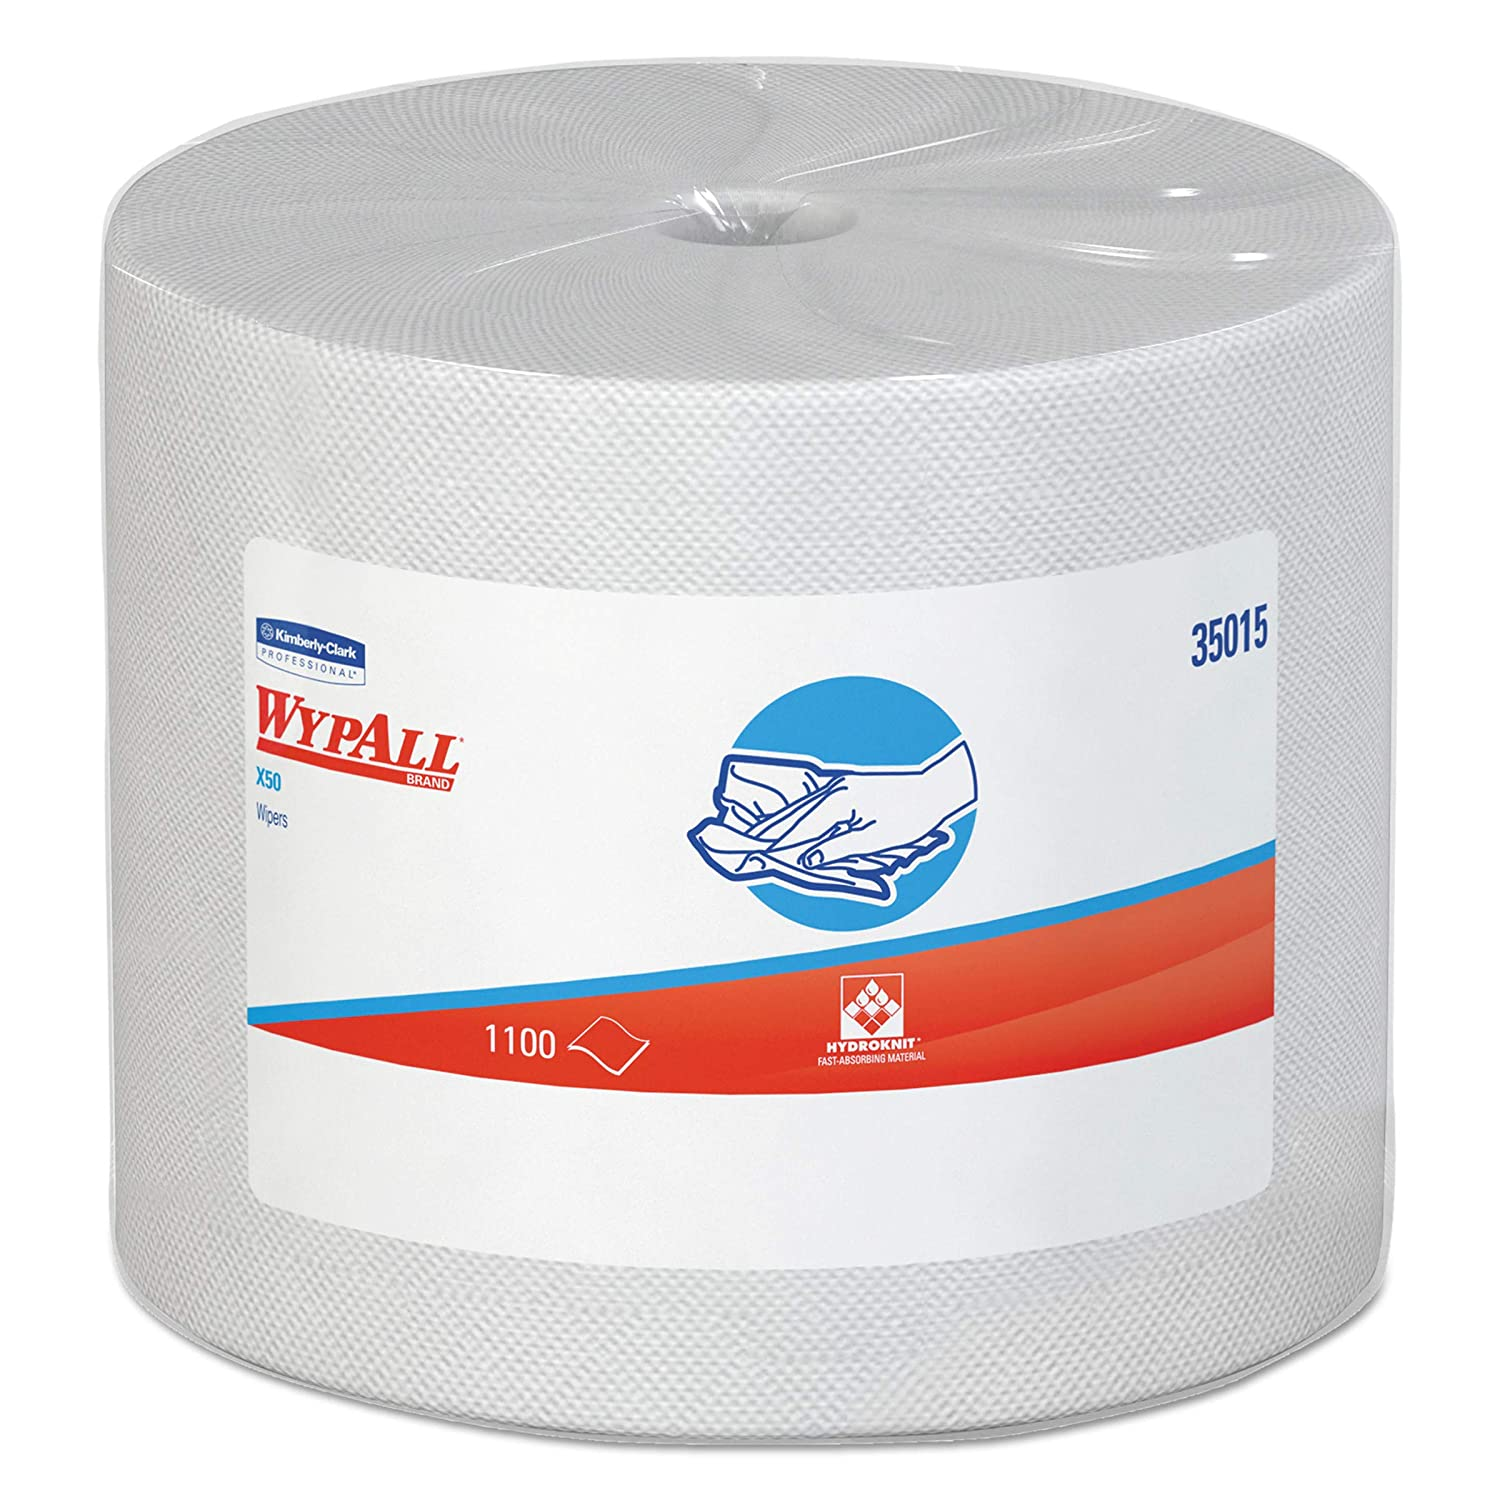 Kimberly-Clark Professional Wypall X50 Disposable Wipers (35015), Strong for Extended Use, Jumbo Roll, White, 1,100 Sheets/Roll Kimberly Clark Professional 8356